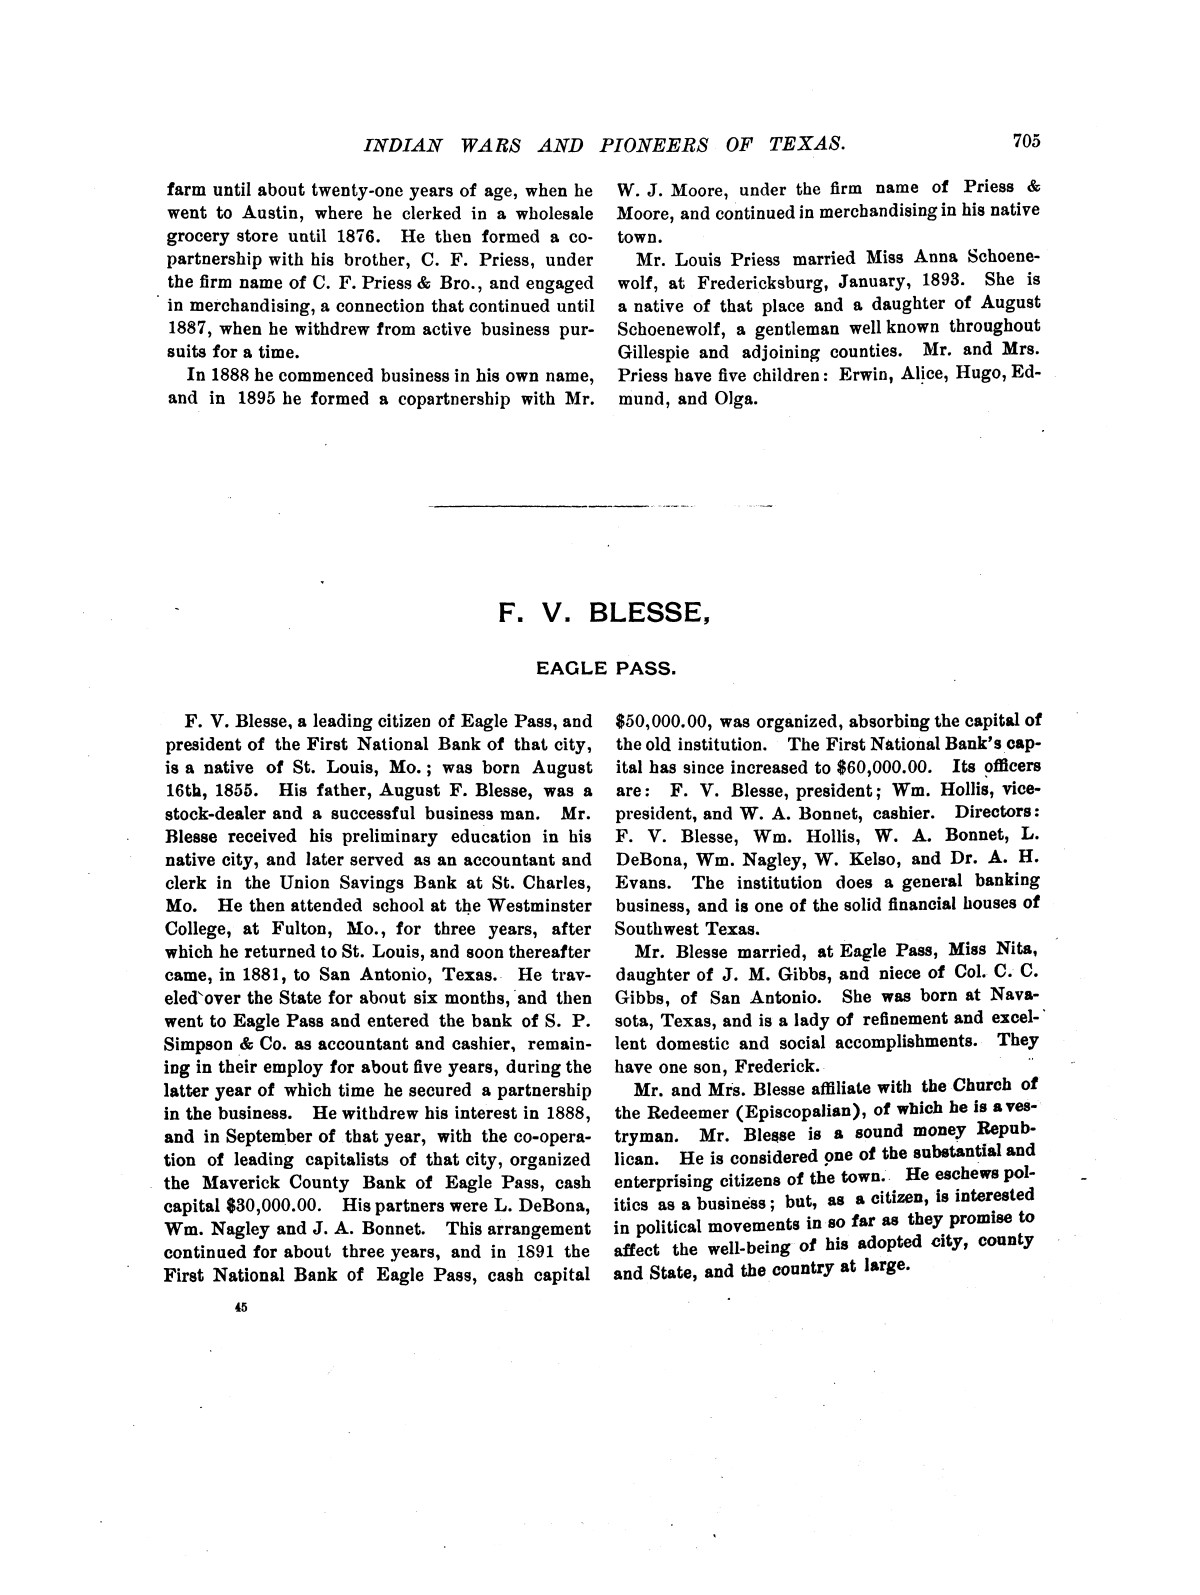 Indian wars and pioneers of Texas / by John Henry Brown.                                                                                                      [Sequence #]: 816 of 894